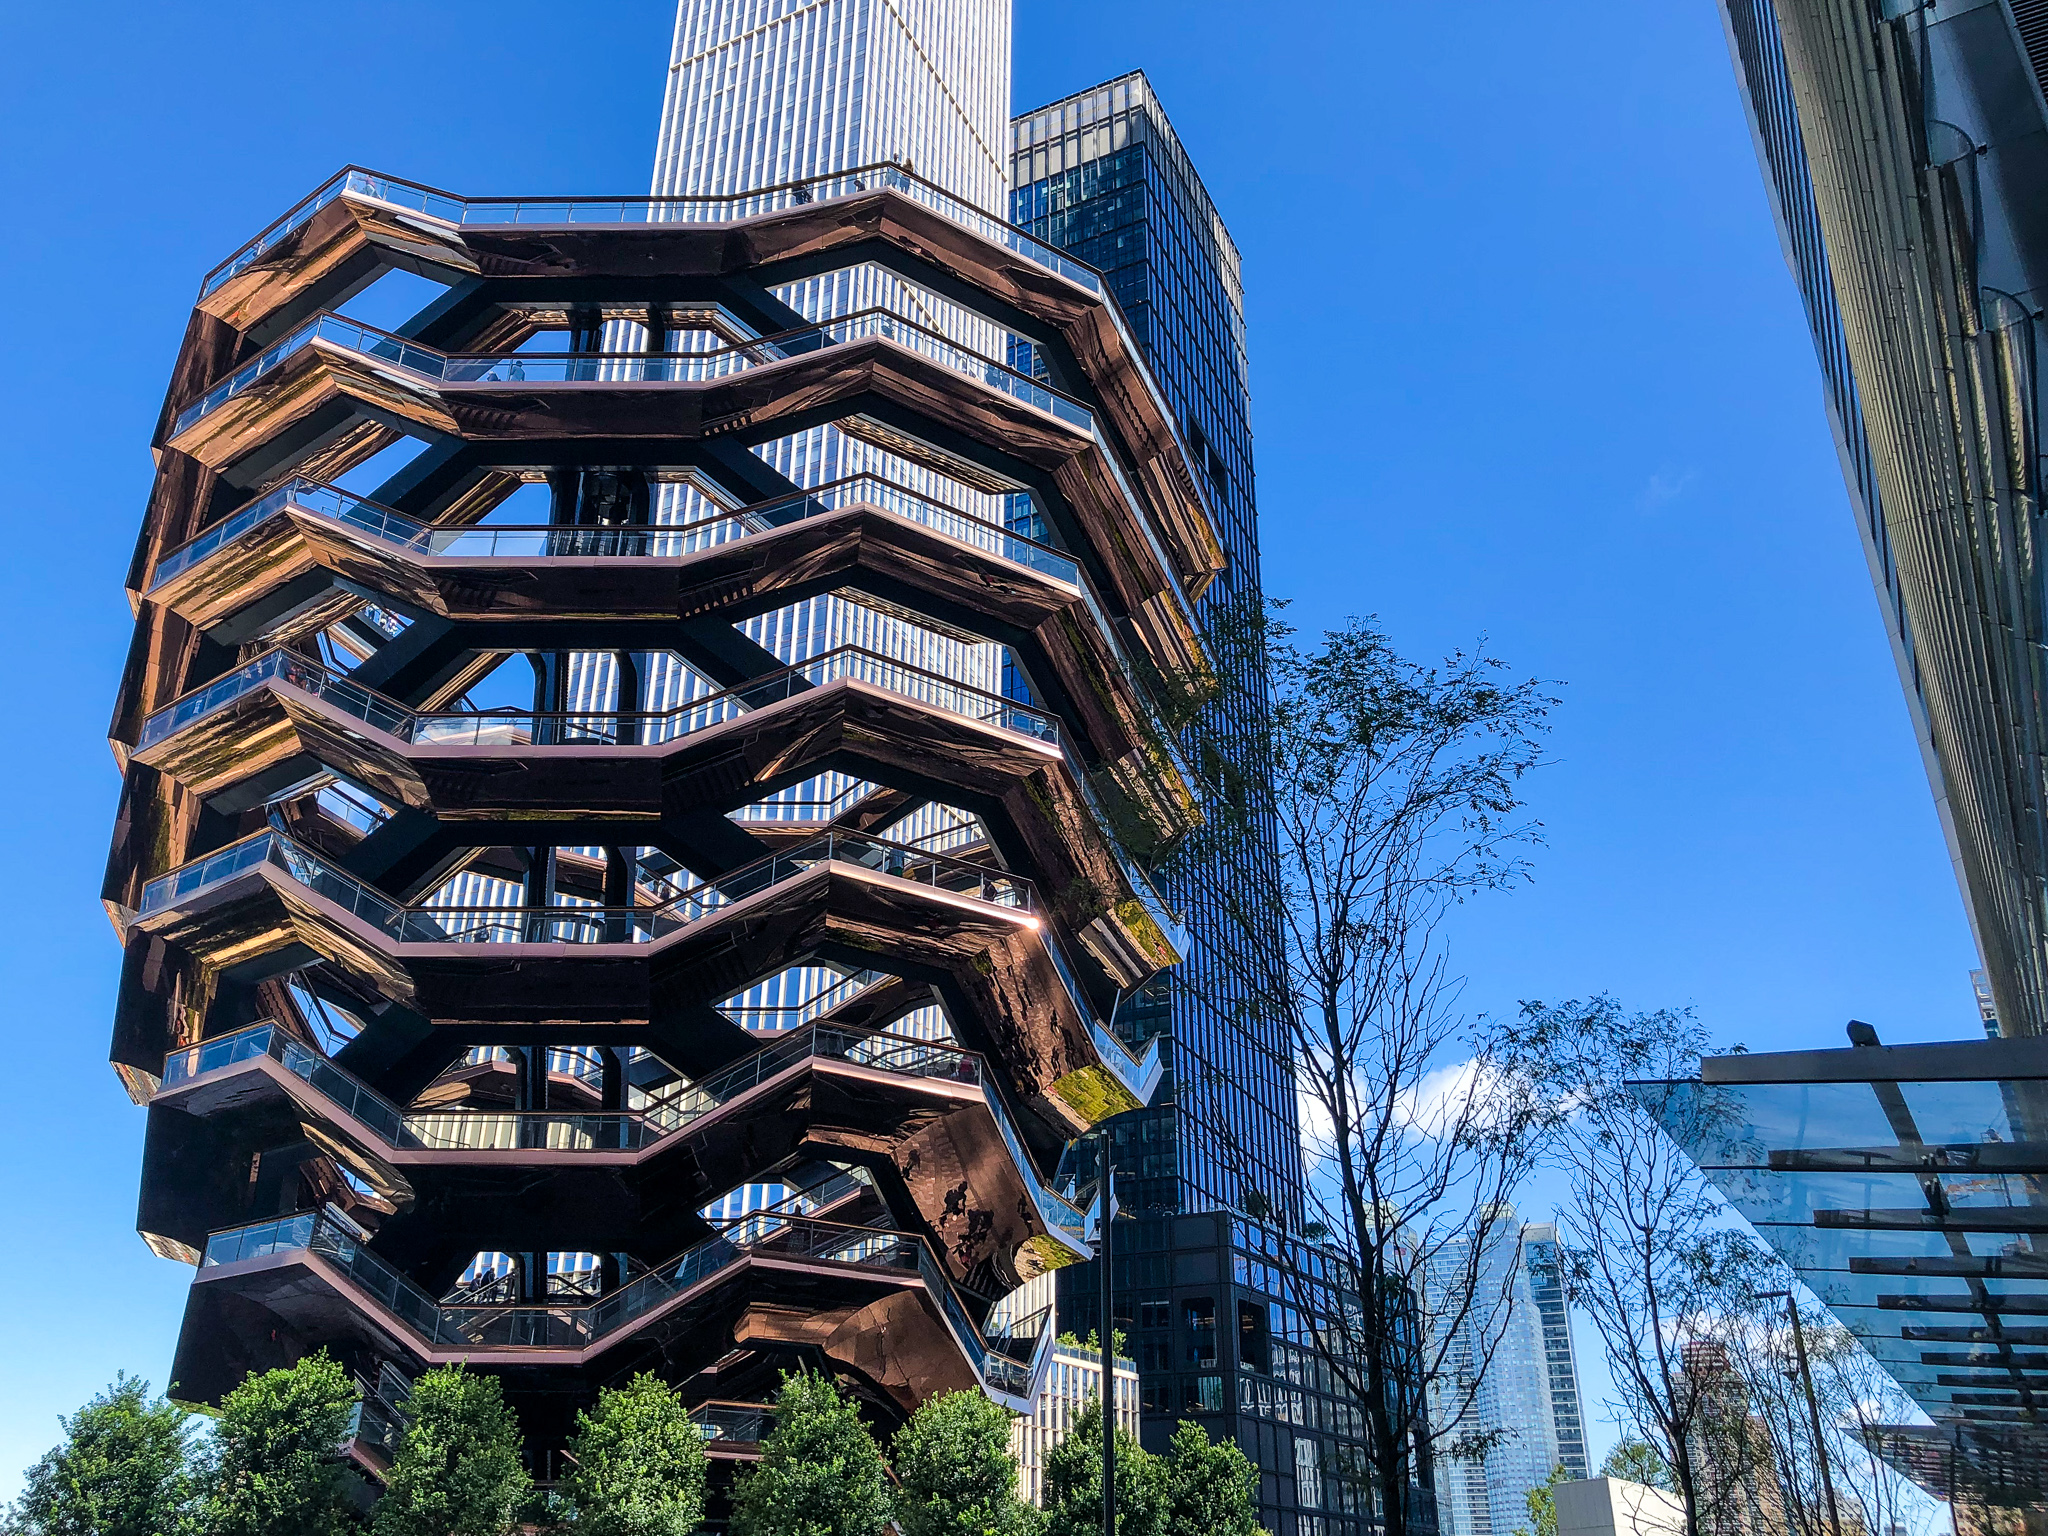 need the best things to do in chelsea nyc? head to nearby hudson yards and see the vessel